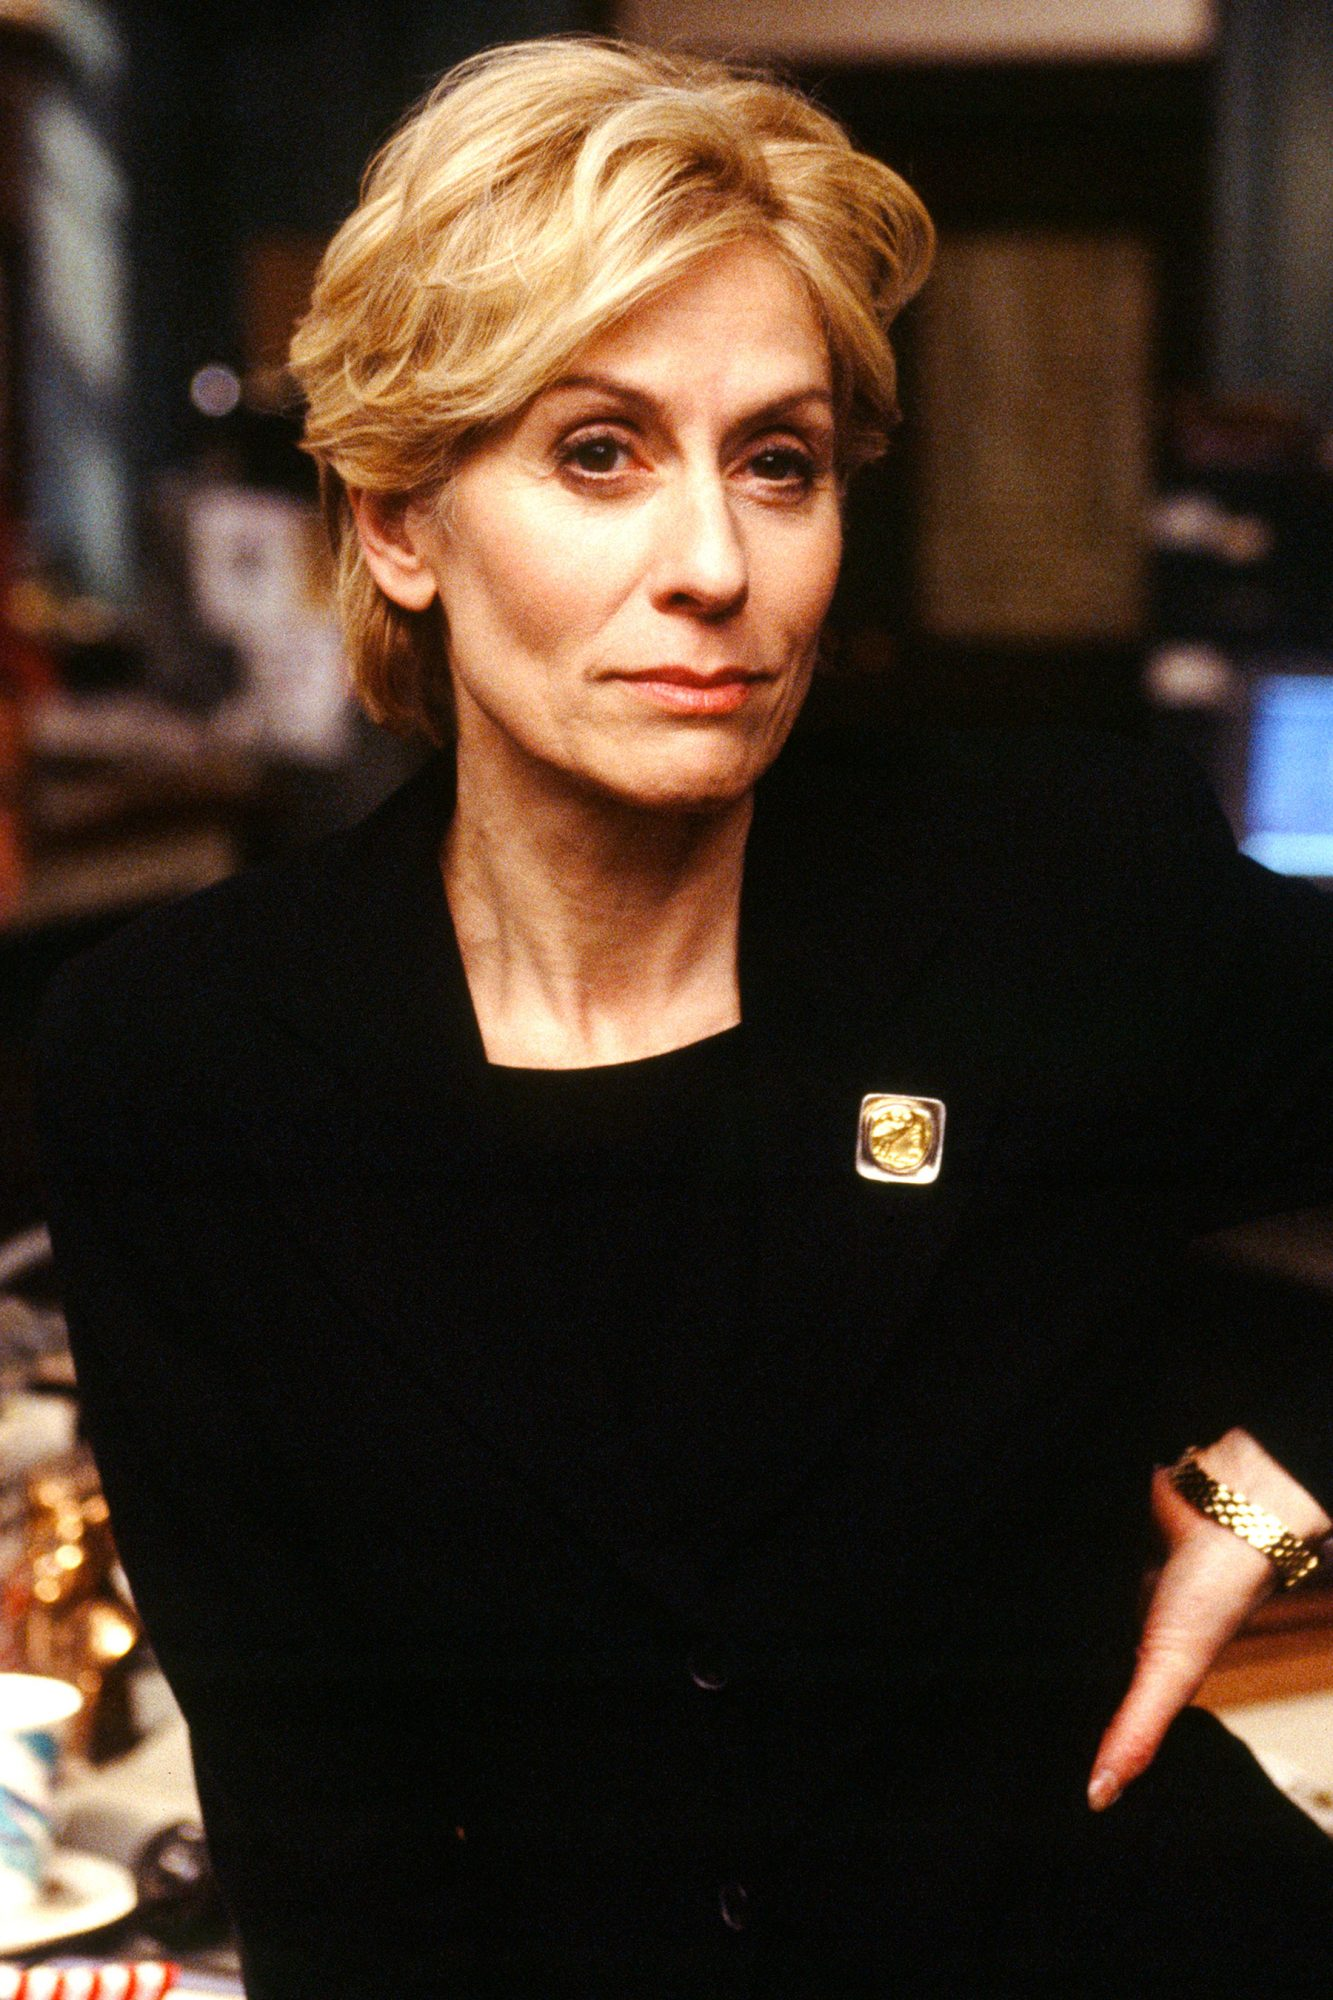 2. Elizabeth Donnelly (Judith Light) — Seasons 3-6